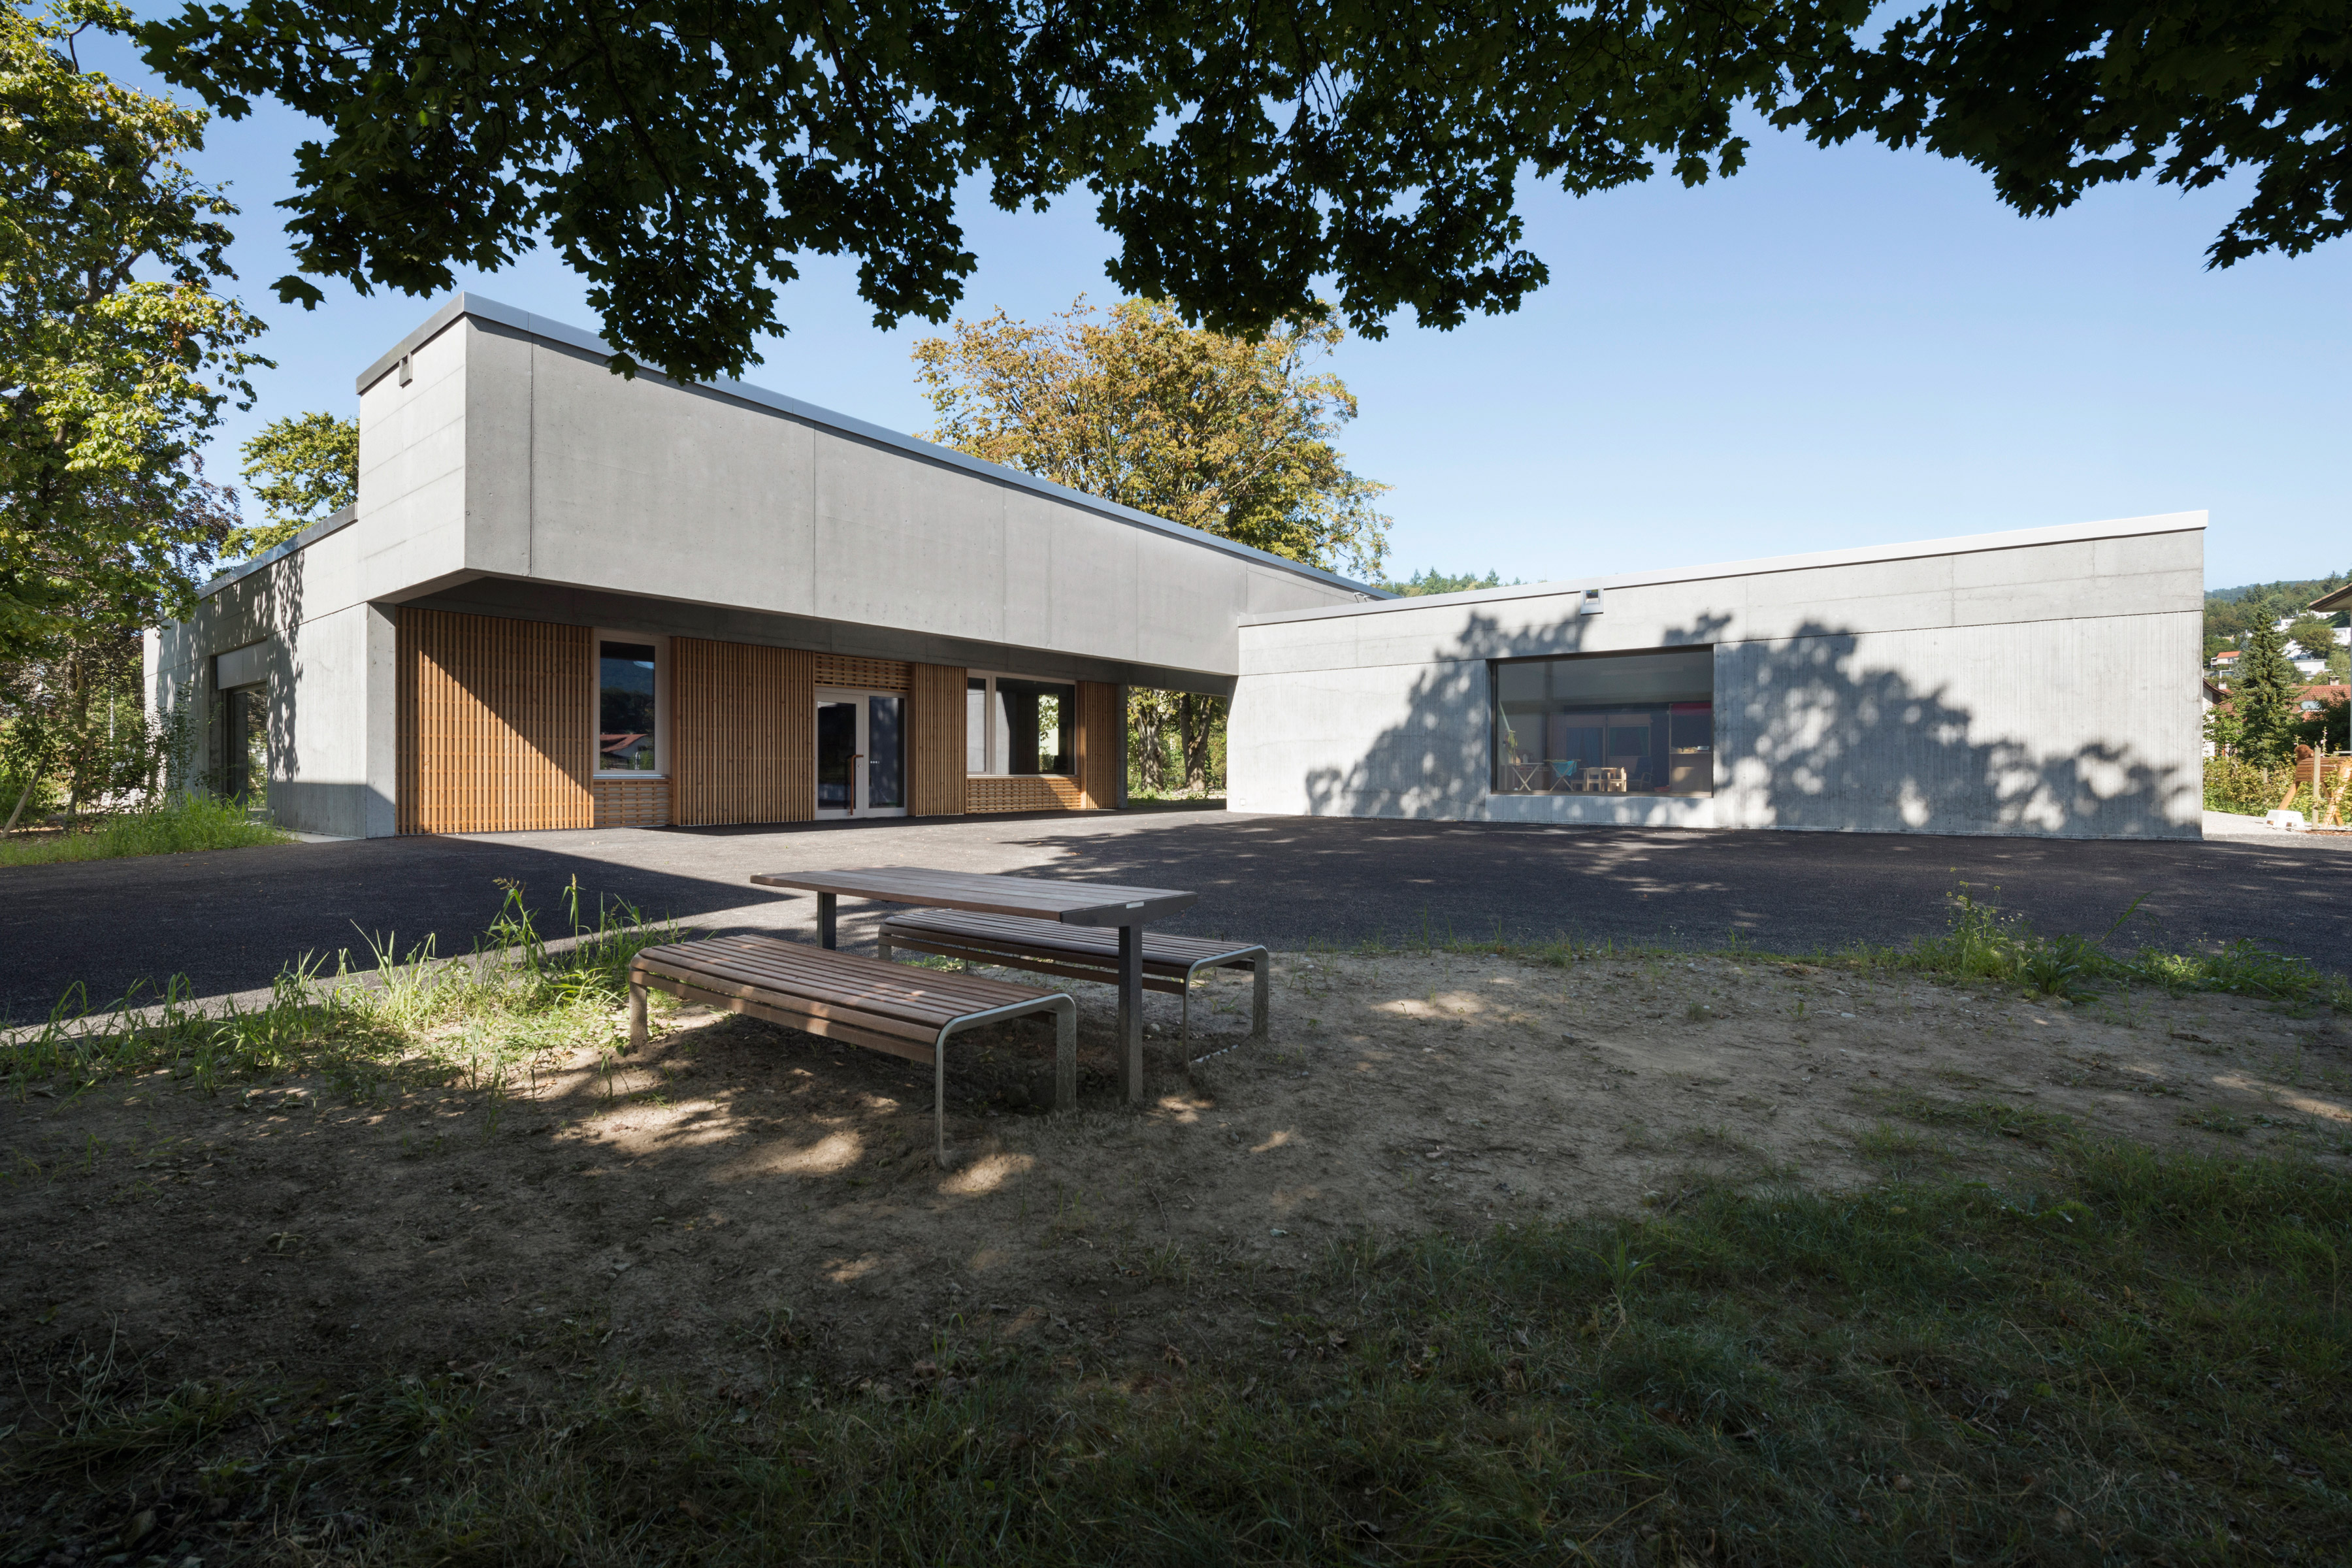 Architecture Photo about Kindergarten Aare Nord Aarau